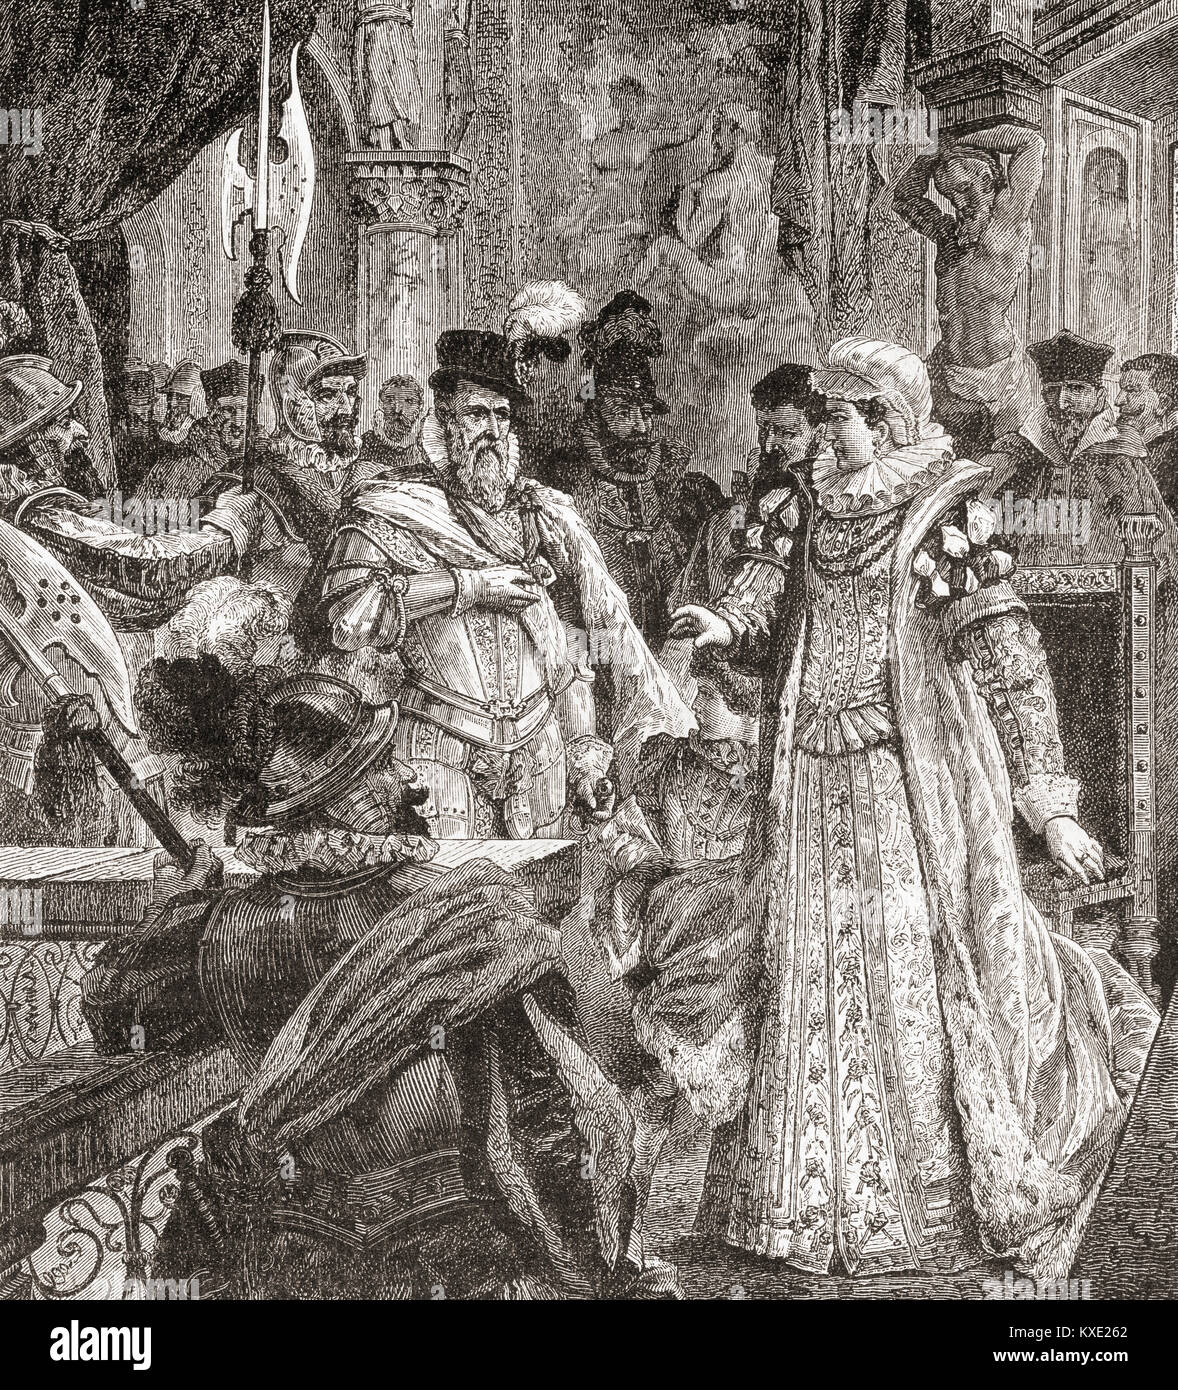 The arrival of the Duke of Alba in Brussels to replace Margaret of Parma as Governor of the Netherlands, 1567.  - Stock Image